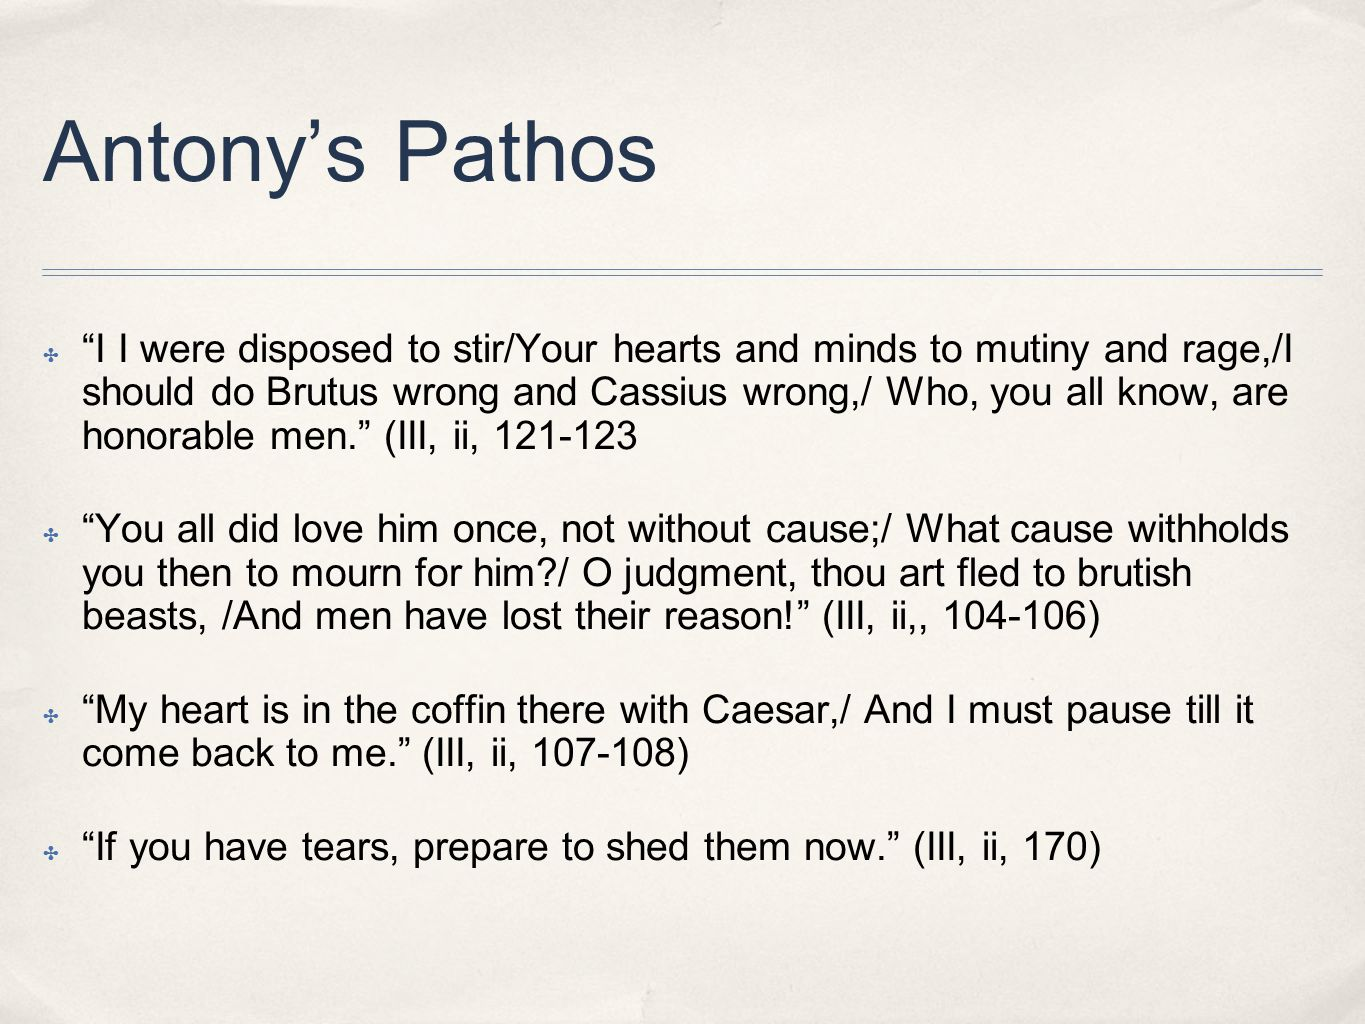 Antony's Pathos ✤ I I were disposed to stir/Your hearts and minds to mutiny and rage,/I should do Brutus wrong and Cassius wrong,/ Who, you all know, are honorable men. (III, ii, 121-123 ✤ You all did love him once, not without cause;/ What cause withholds you then to mourn for him / O judgment, thou art fled to brutish beasts, /And men have lost their reason! (III, ii,, 104-106) ✤ My heart is in the coffin there with Caesar,/ And I must pause till it come back to me. (III, ii, 107-108) ✤ If you have tears, prepare to shed them now. (III, ii, 170)